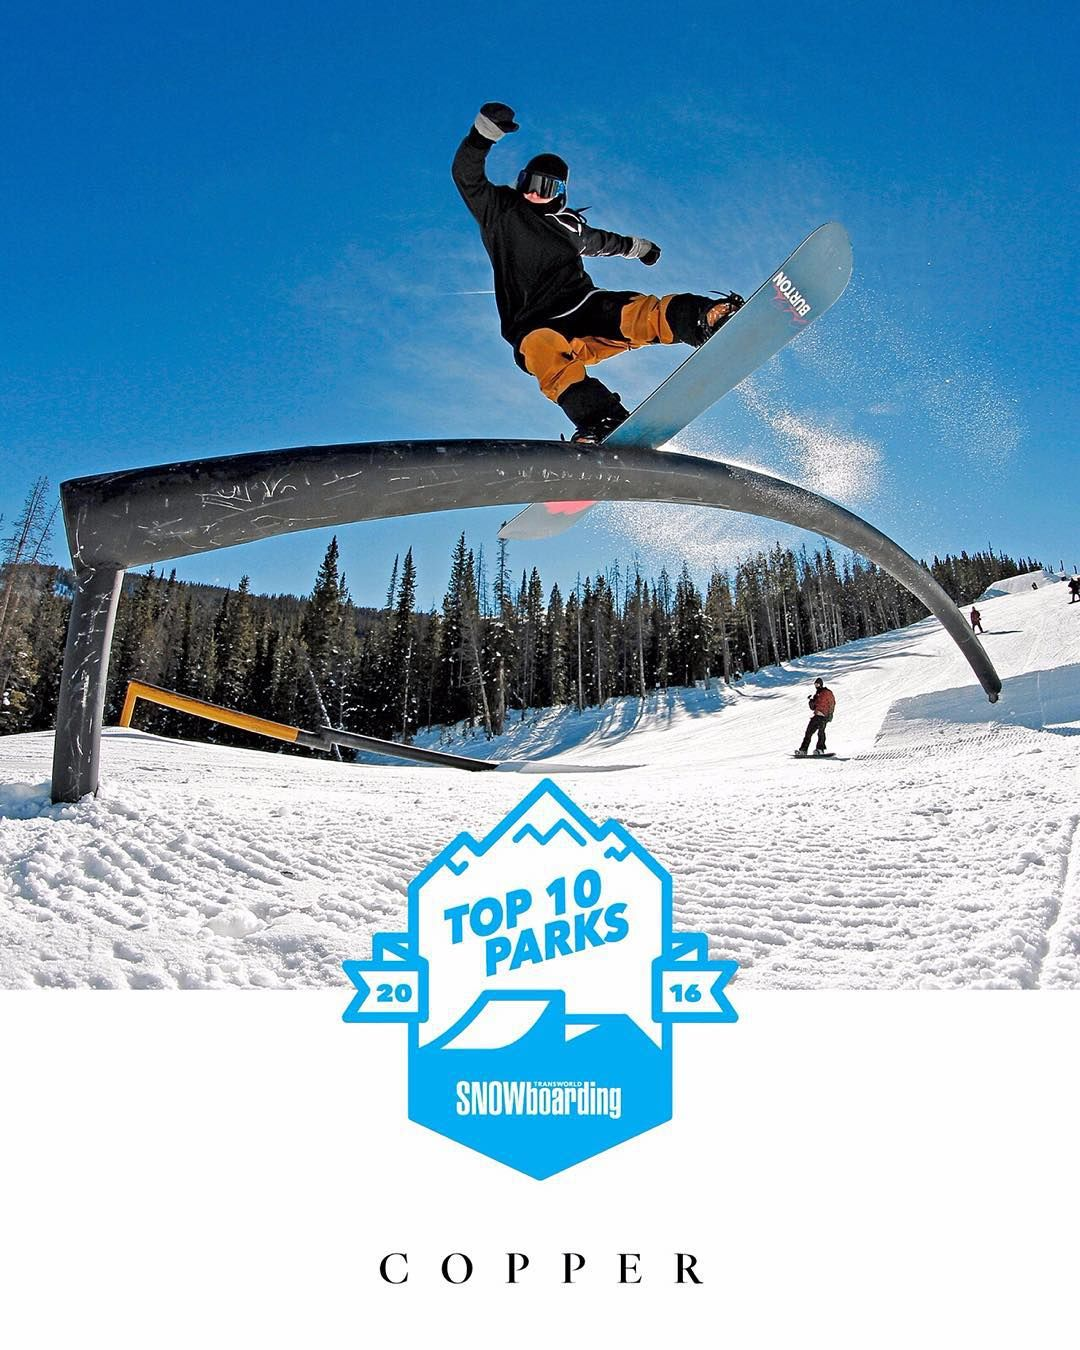 Not Only Is The Coppermtn Park Packed With Rails And Jumps There Are Also Three Halfpipes Beginner 13 Foot And Transworld Snowboarding Snowboarding Instagram